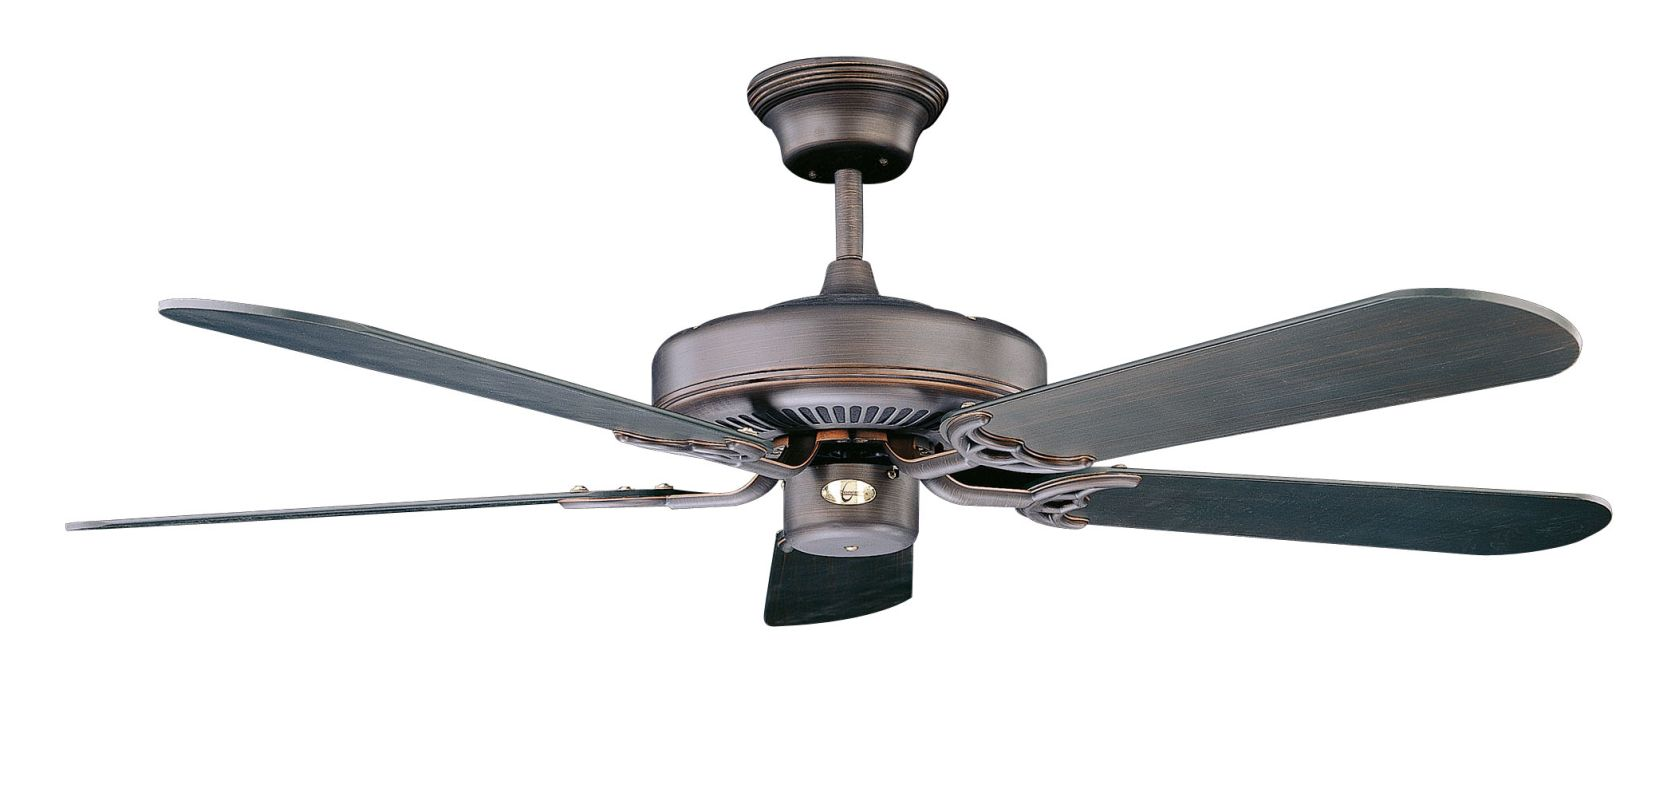 "Concord 52DCO5W Indoor 5 Blade 52"" Ceiling Fan with Blades from the"